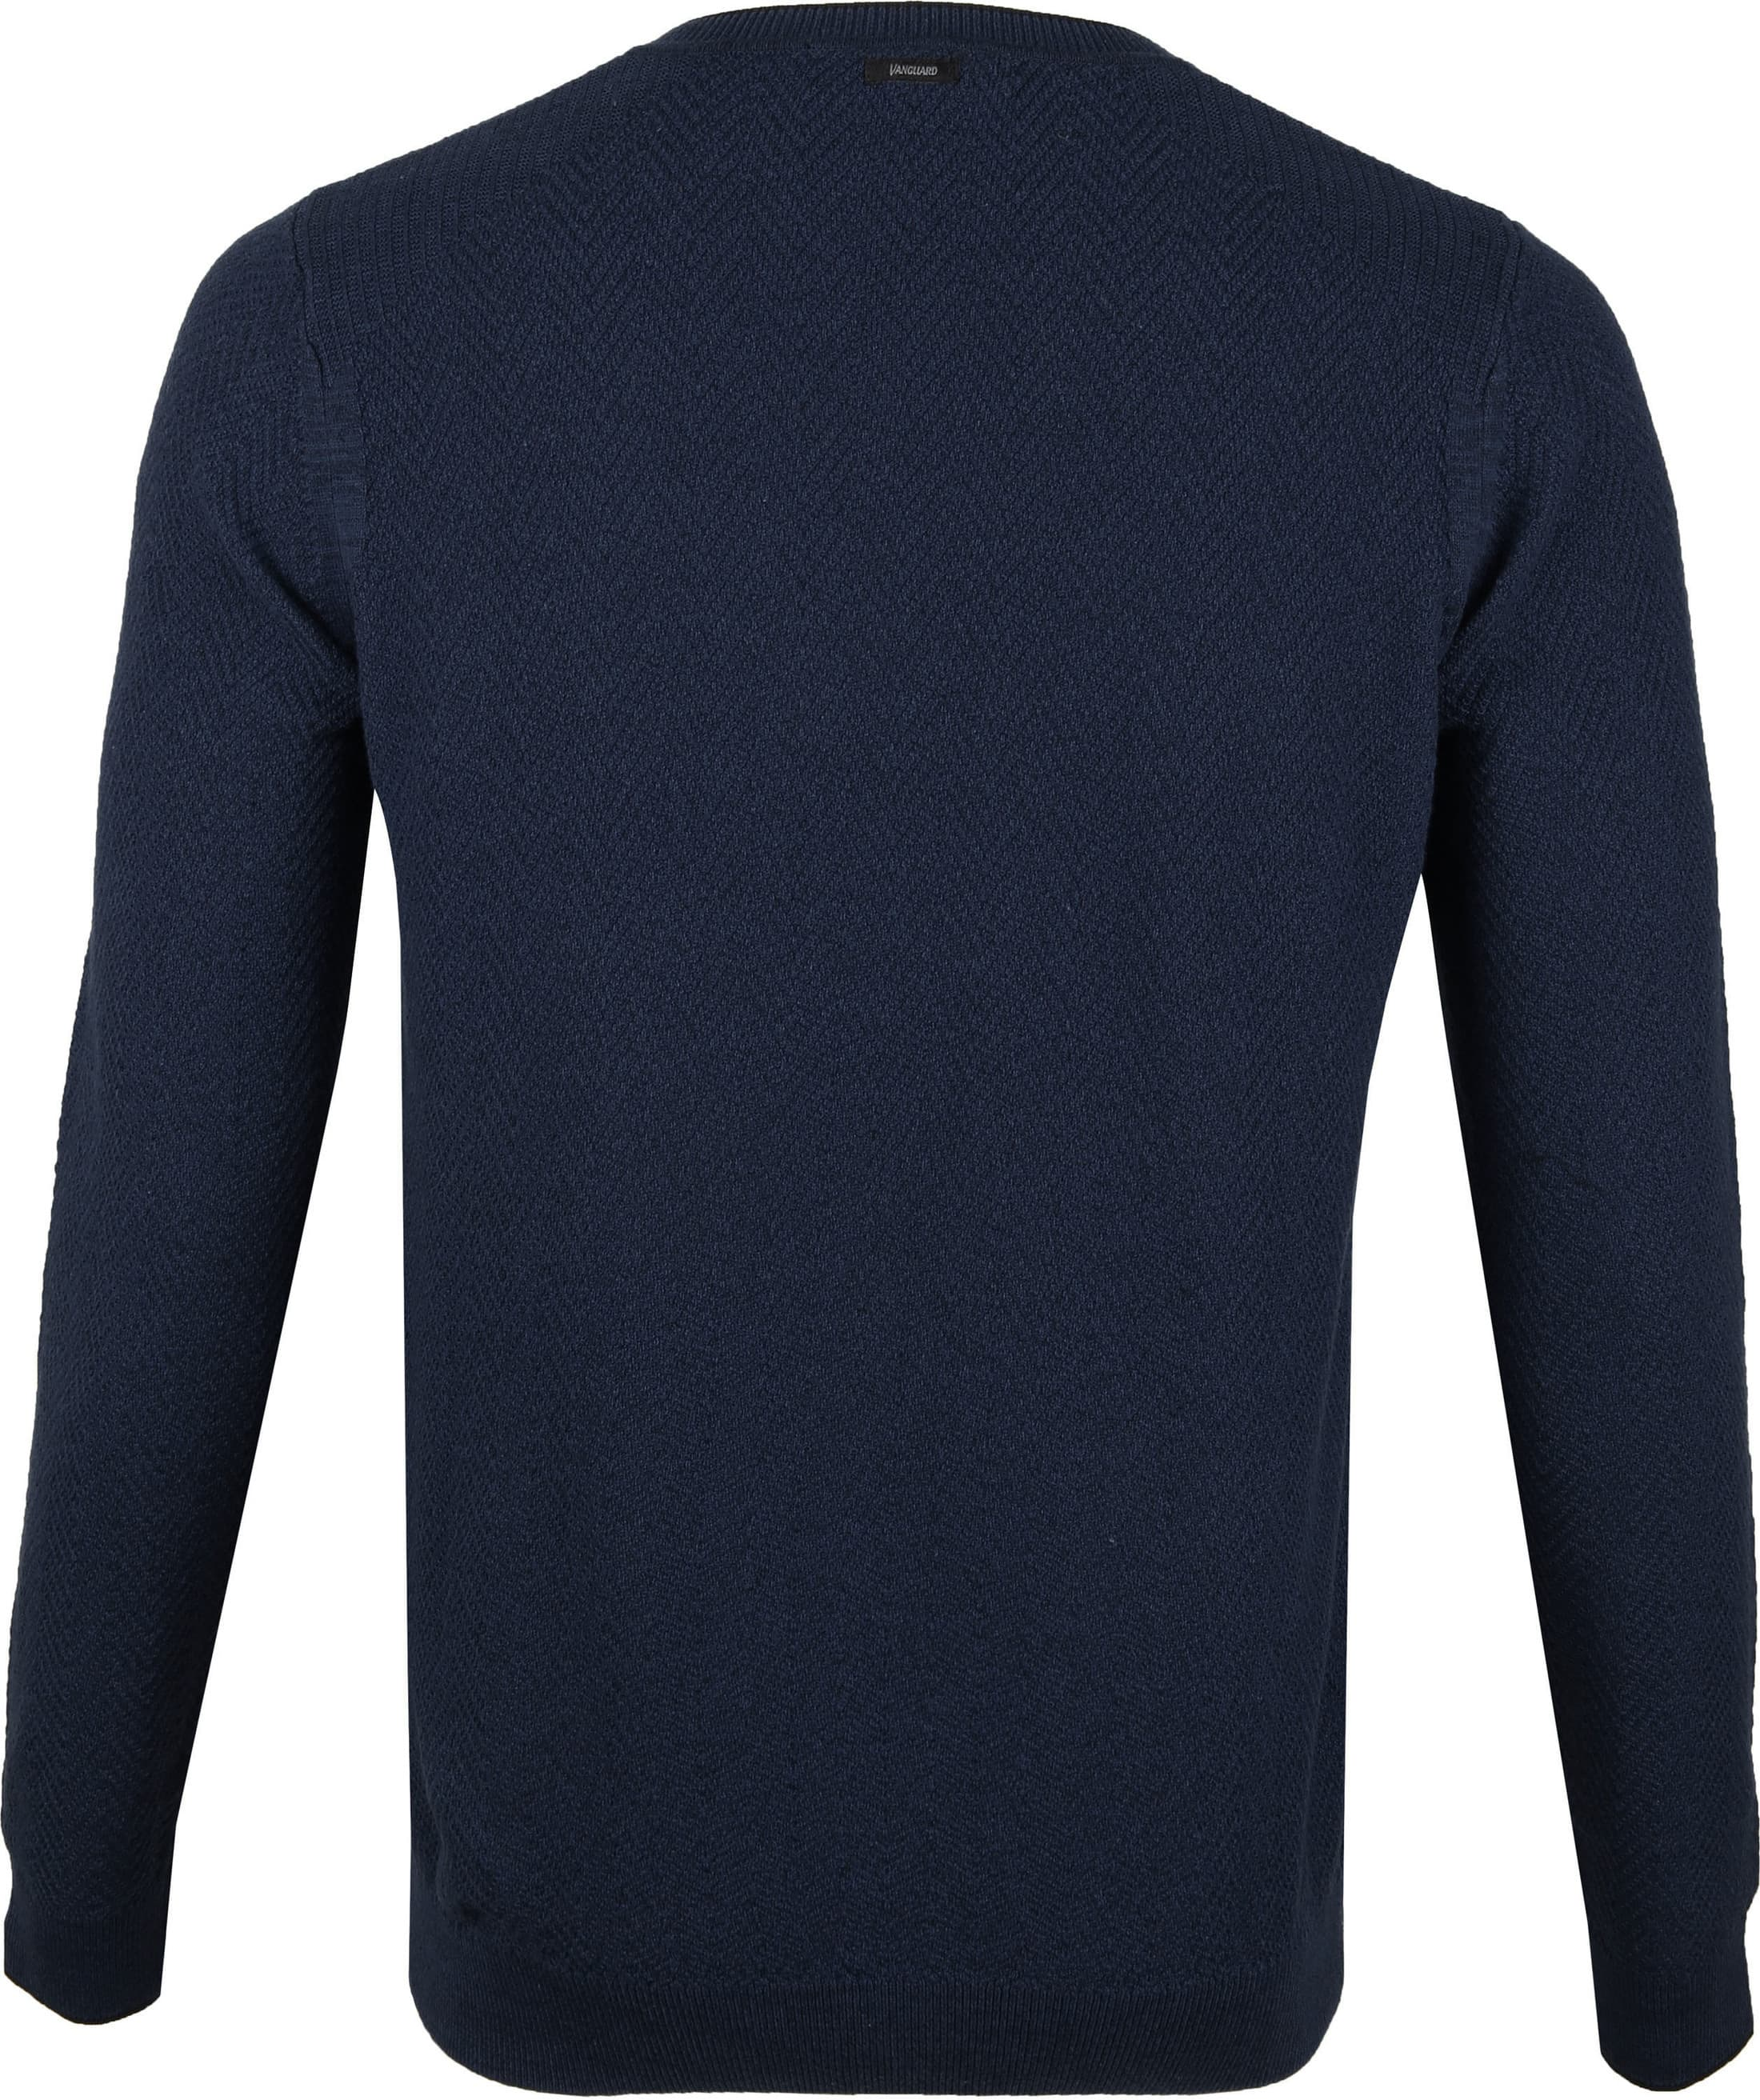 Vanguard Pullover Dark Blue foto 2